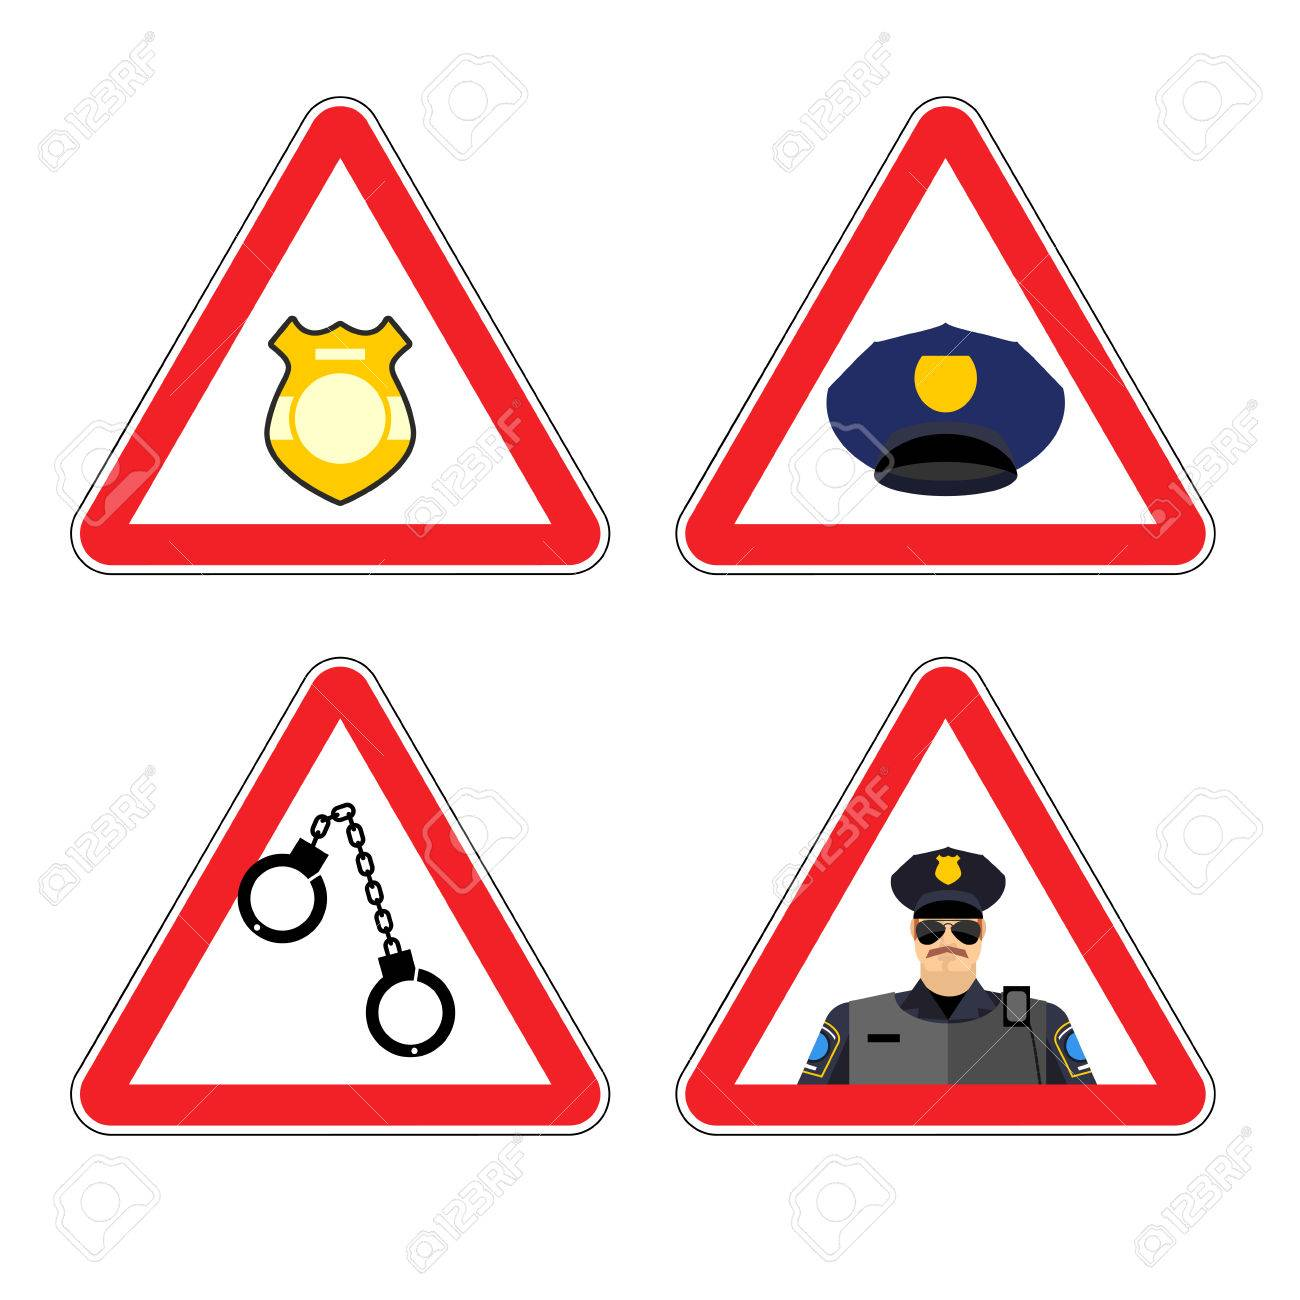 vector warning sign police attention dangers yellow sign detention police badge and police cap set road sign against a cop policeman warning